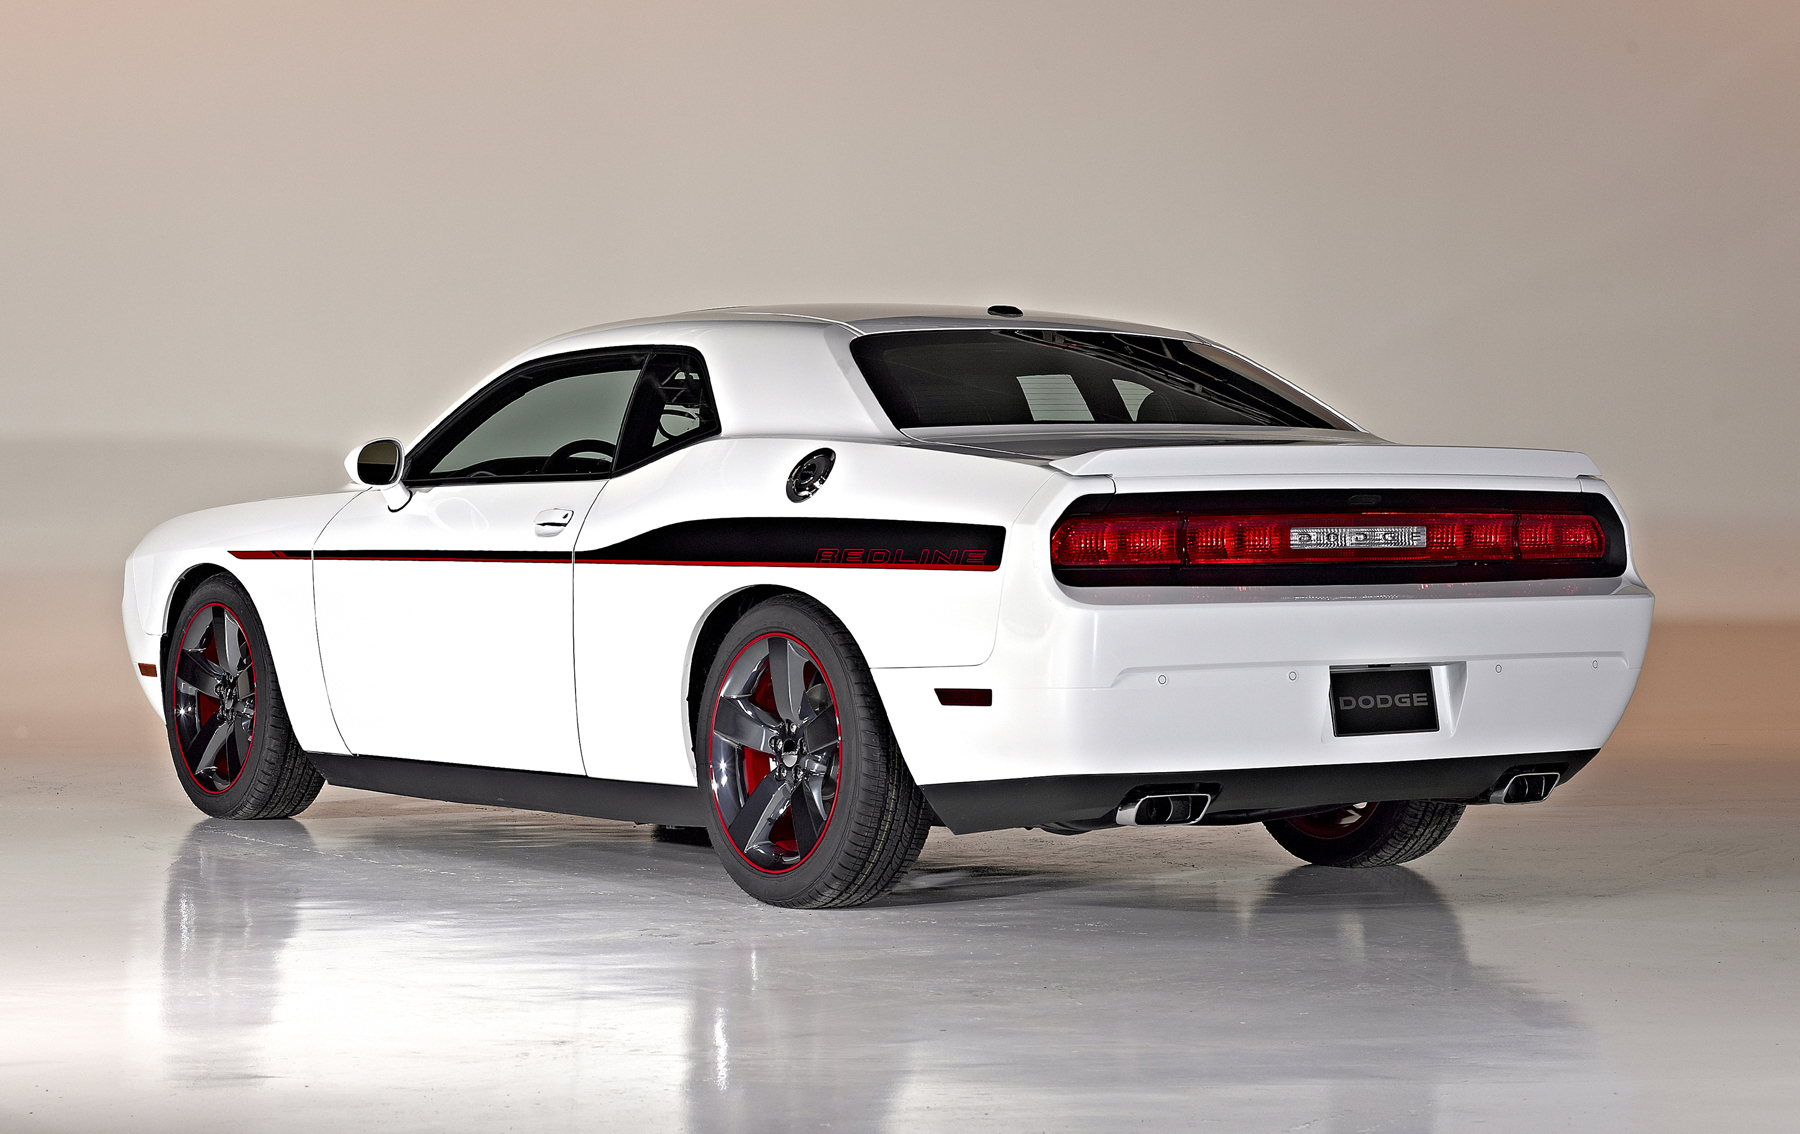 How to draw dodge challenger rt 2011 - While